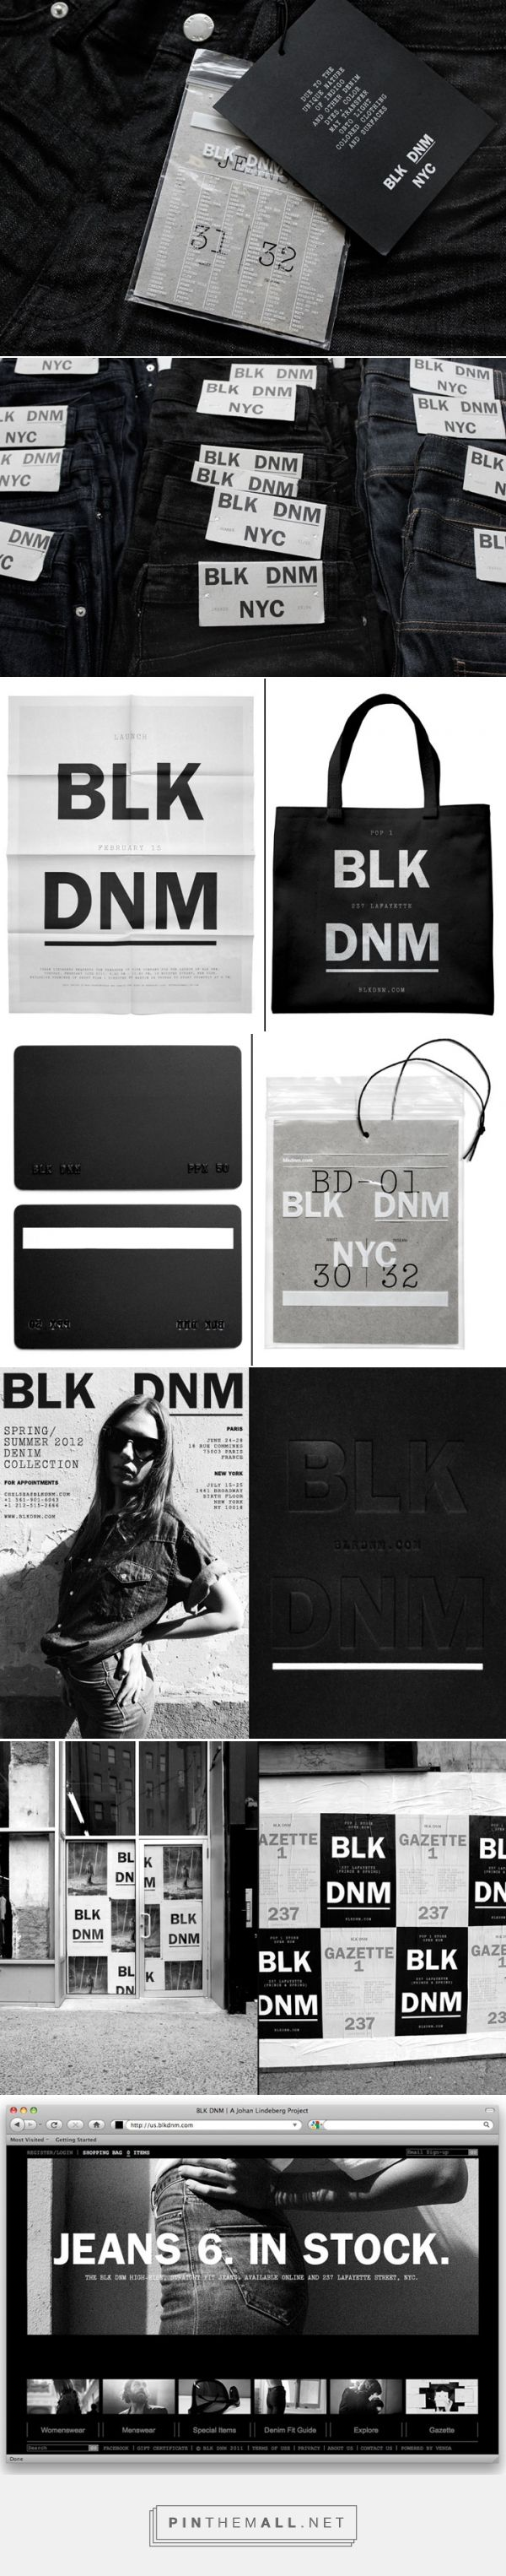 BLK DNM branding by Triboro Design »  Retail Design Blog - created via http://pinthemall.net